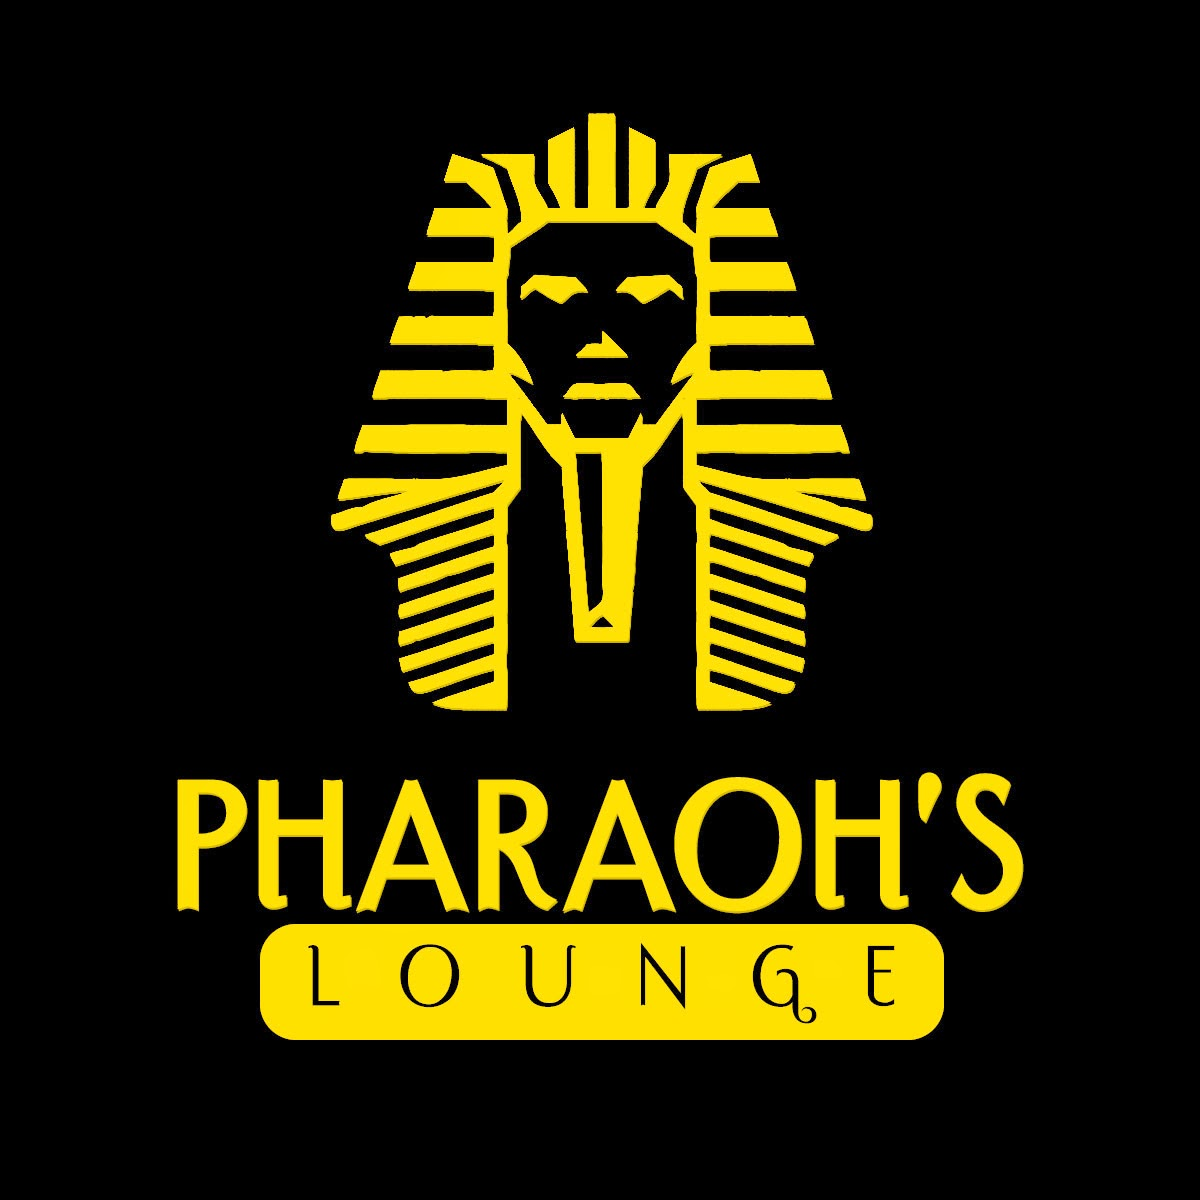 Pharaoh's Hookah Lounge - San diego, CA 92109 - (858)886-7975 | ShowMeLocal.com